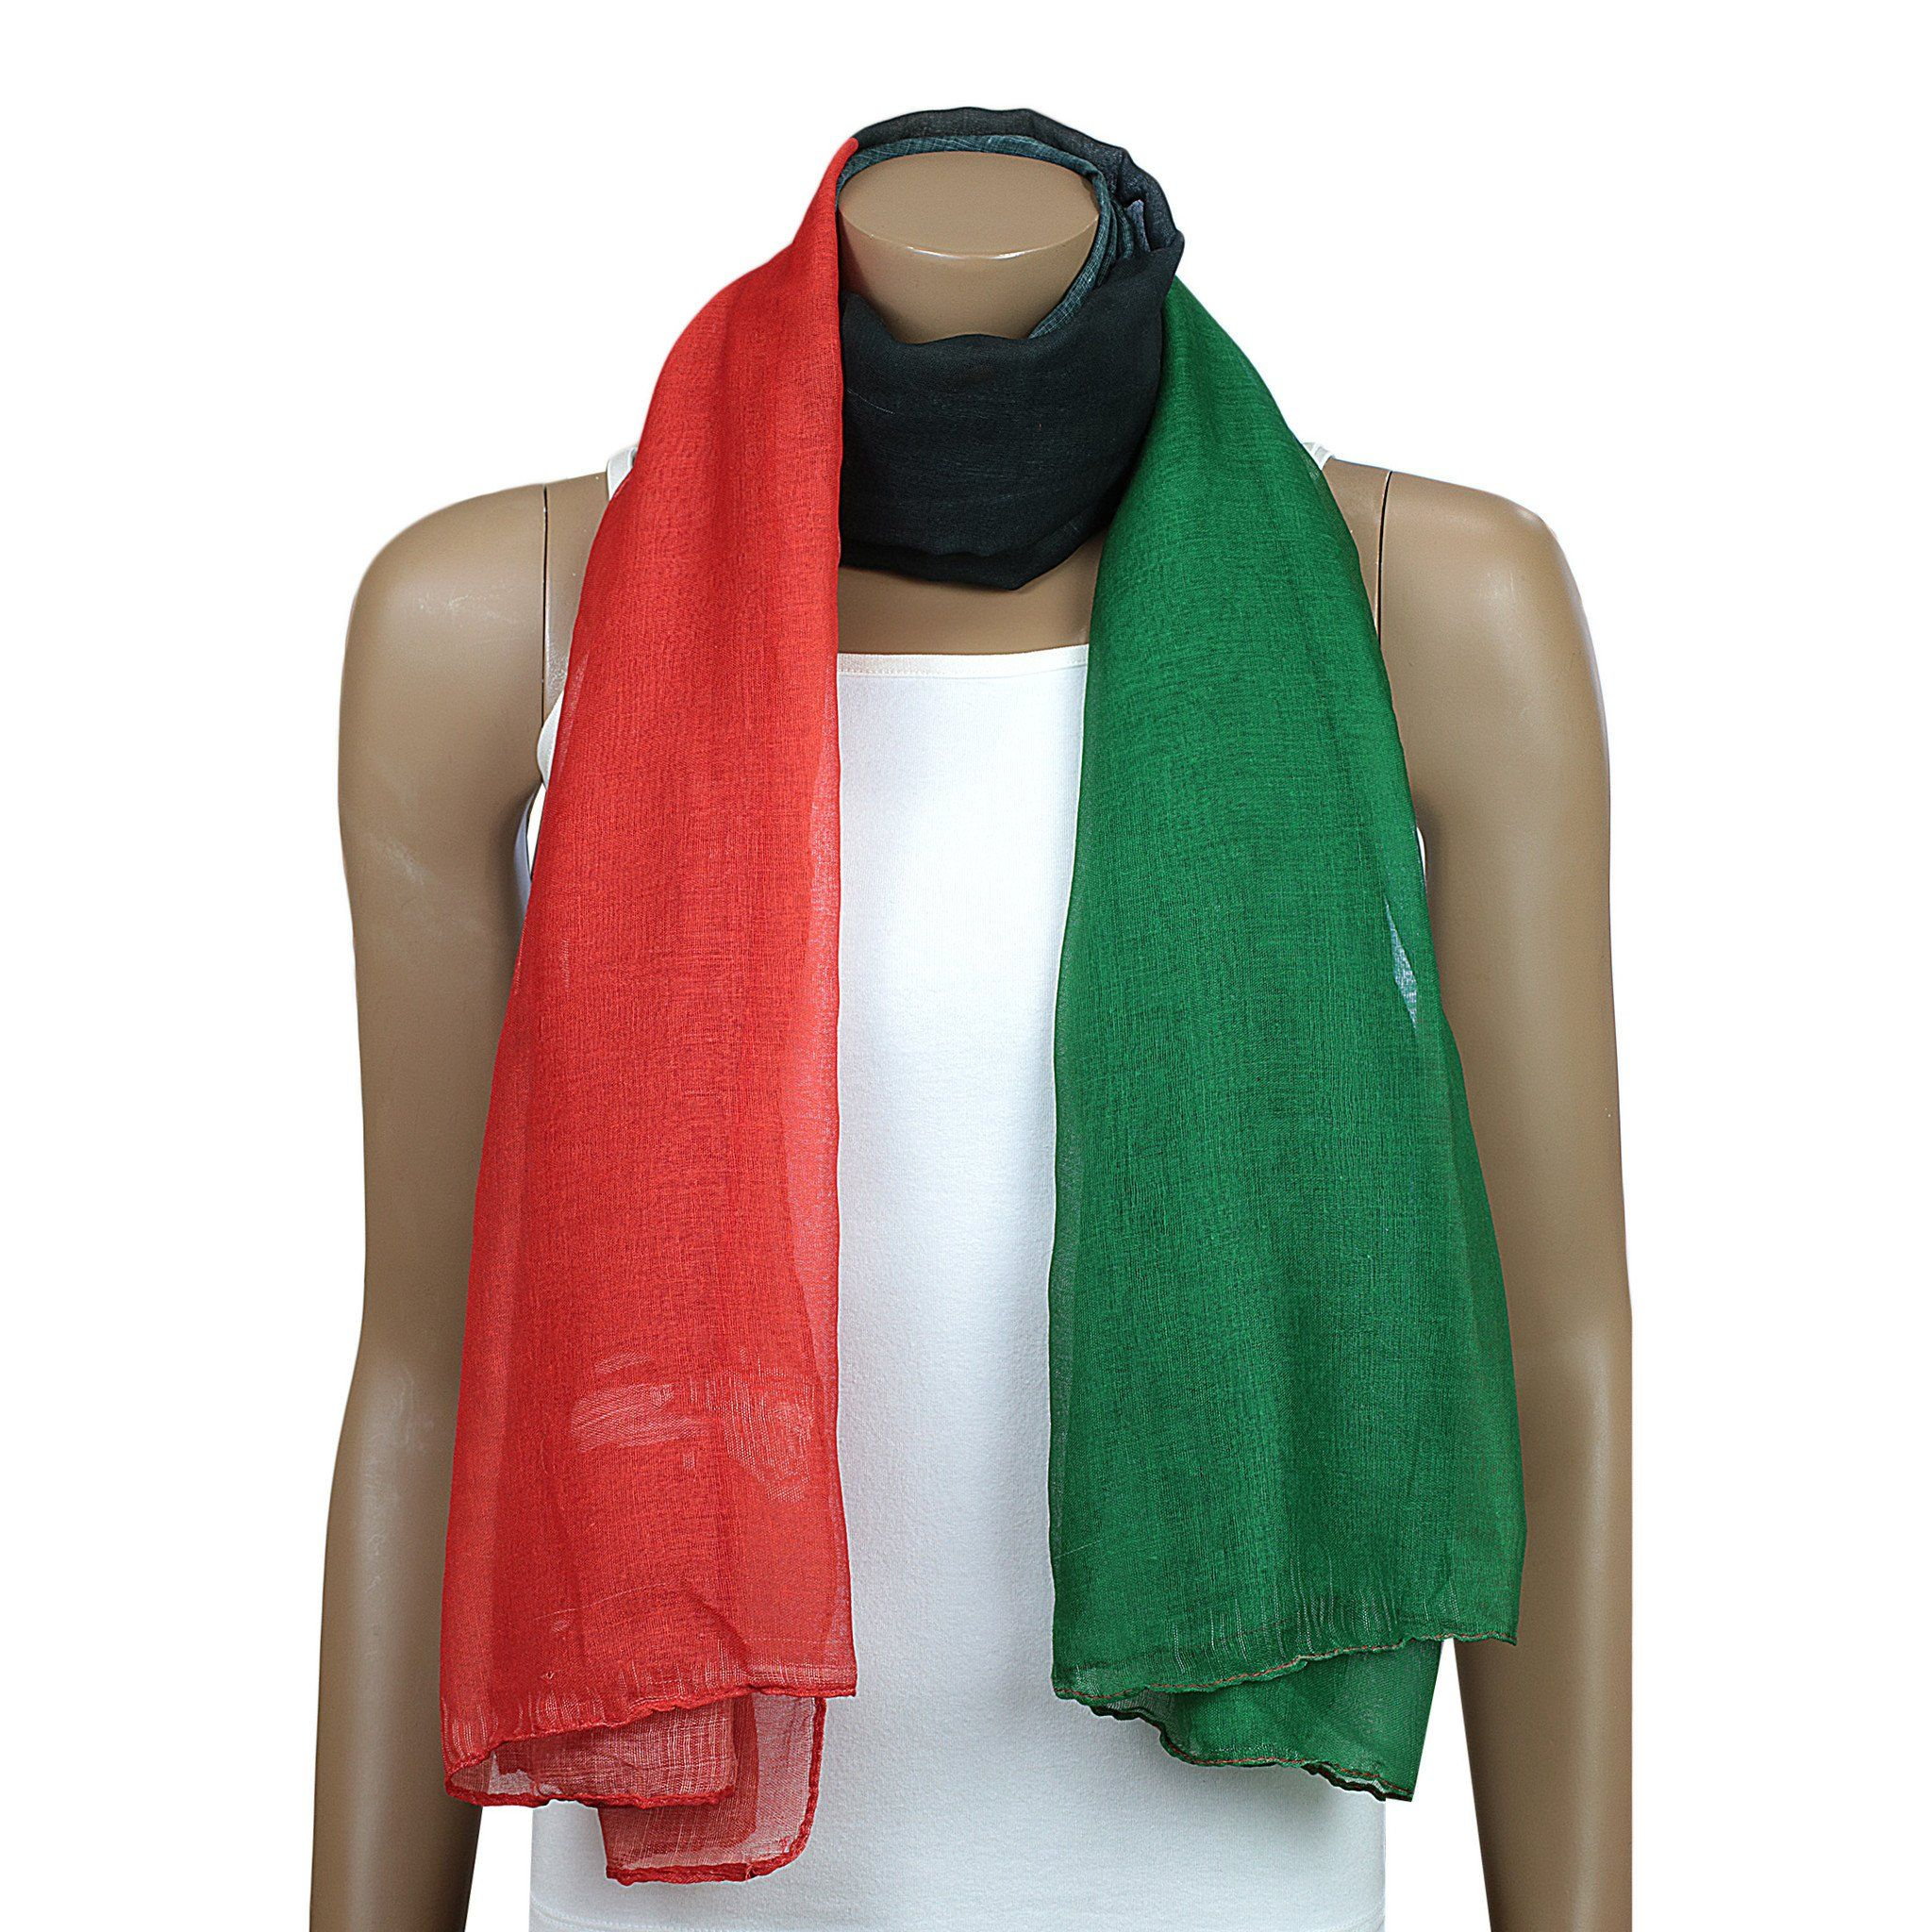 A beautiful lightweight oversized scarf featuring the Red, Black and Green colors associated with African American culture and Black Liberation. Perfect, If you're looking for a fashion accessory to help you show your pride in our culture.